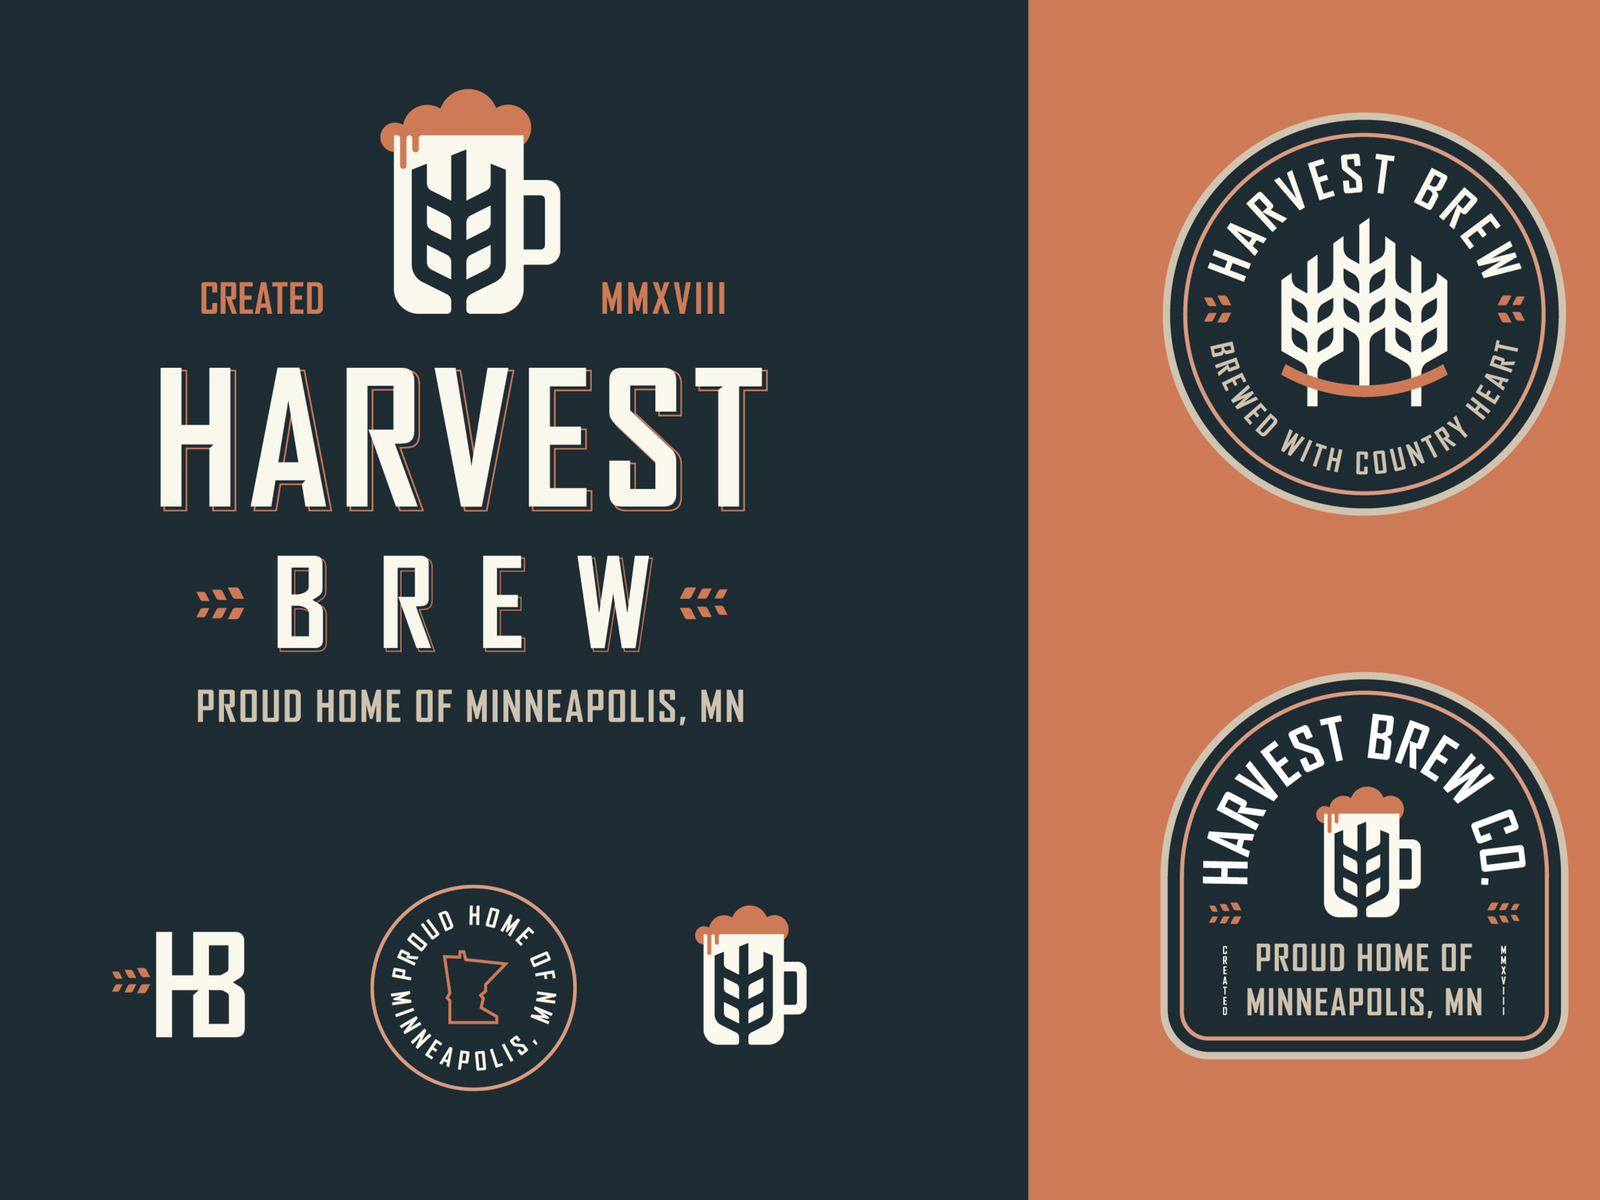 Harvest brew secondary logos image for web 4x